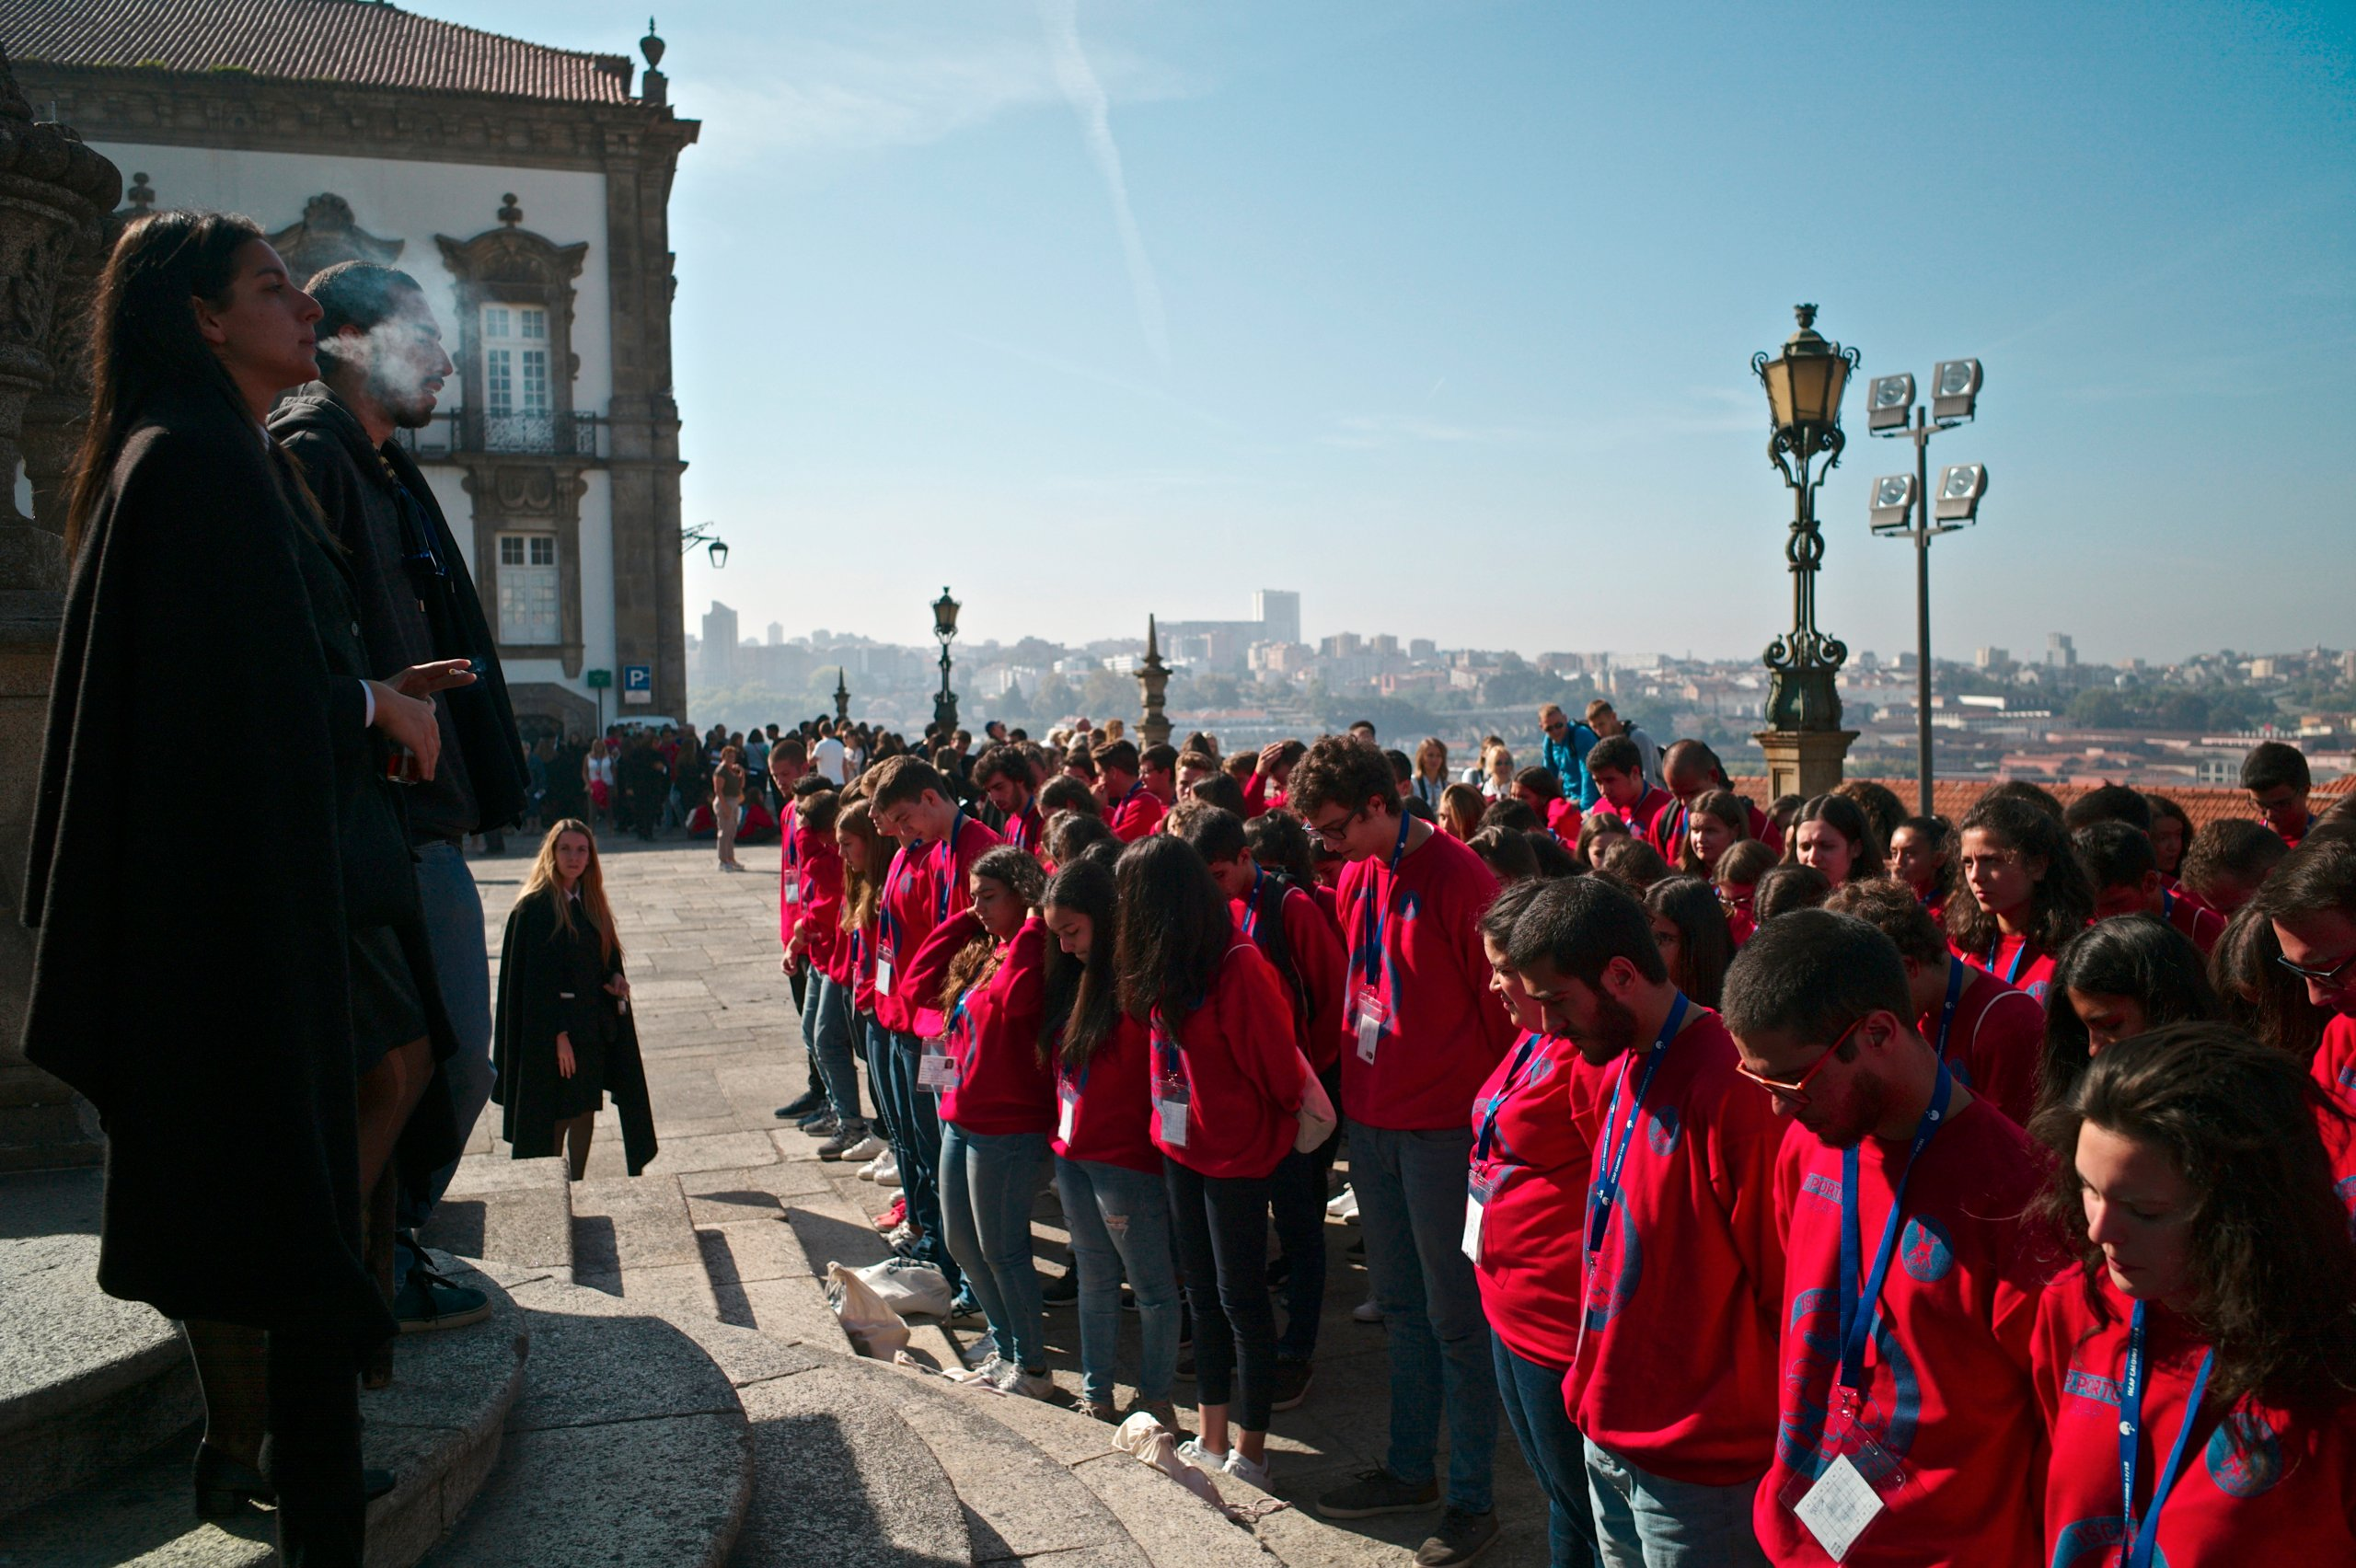 University students on initiation rituals of freshmen, known in Portuguese as praxe.